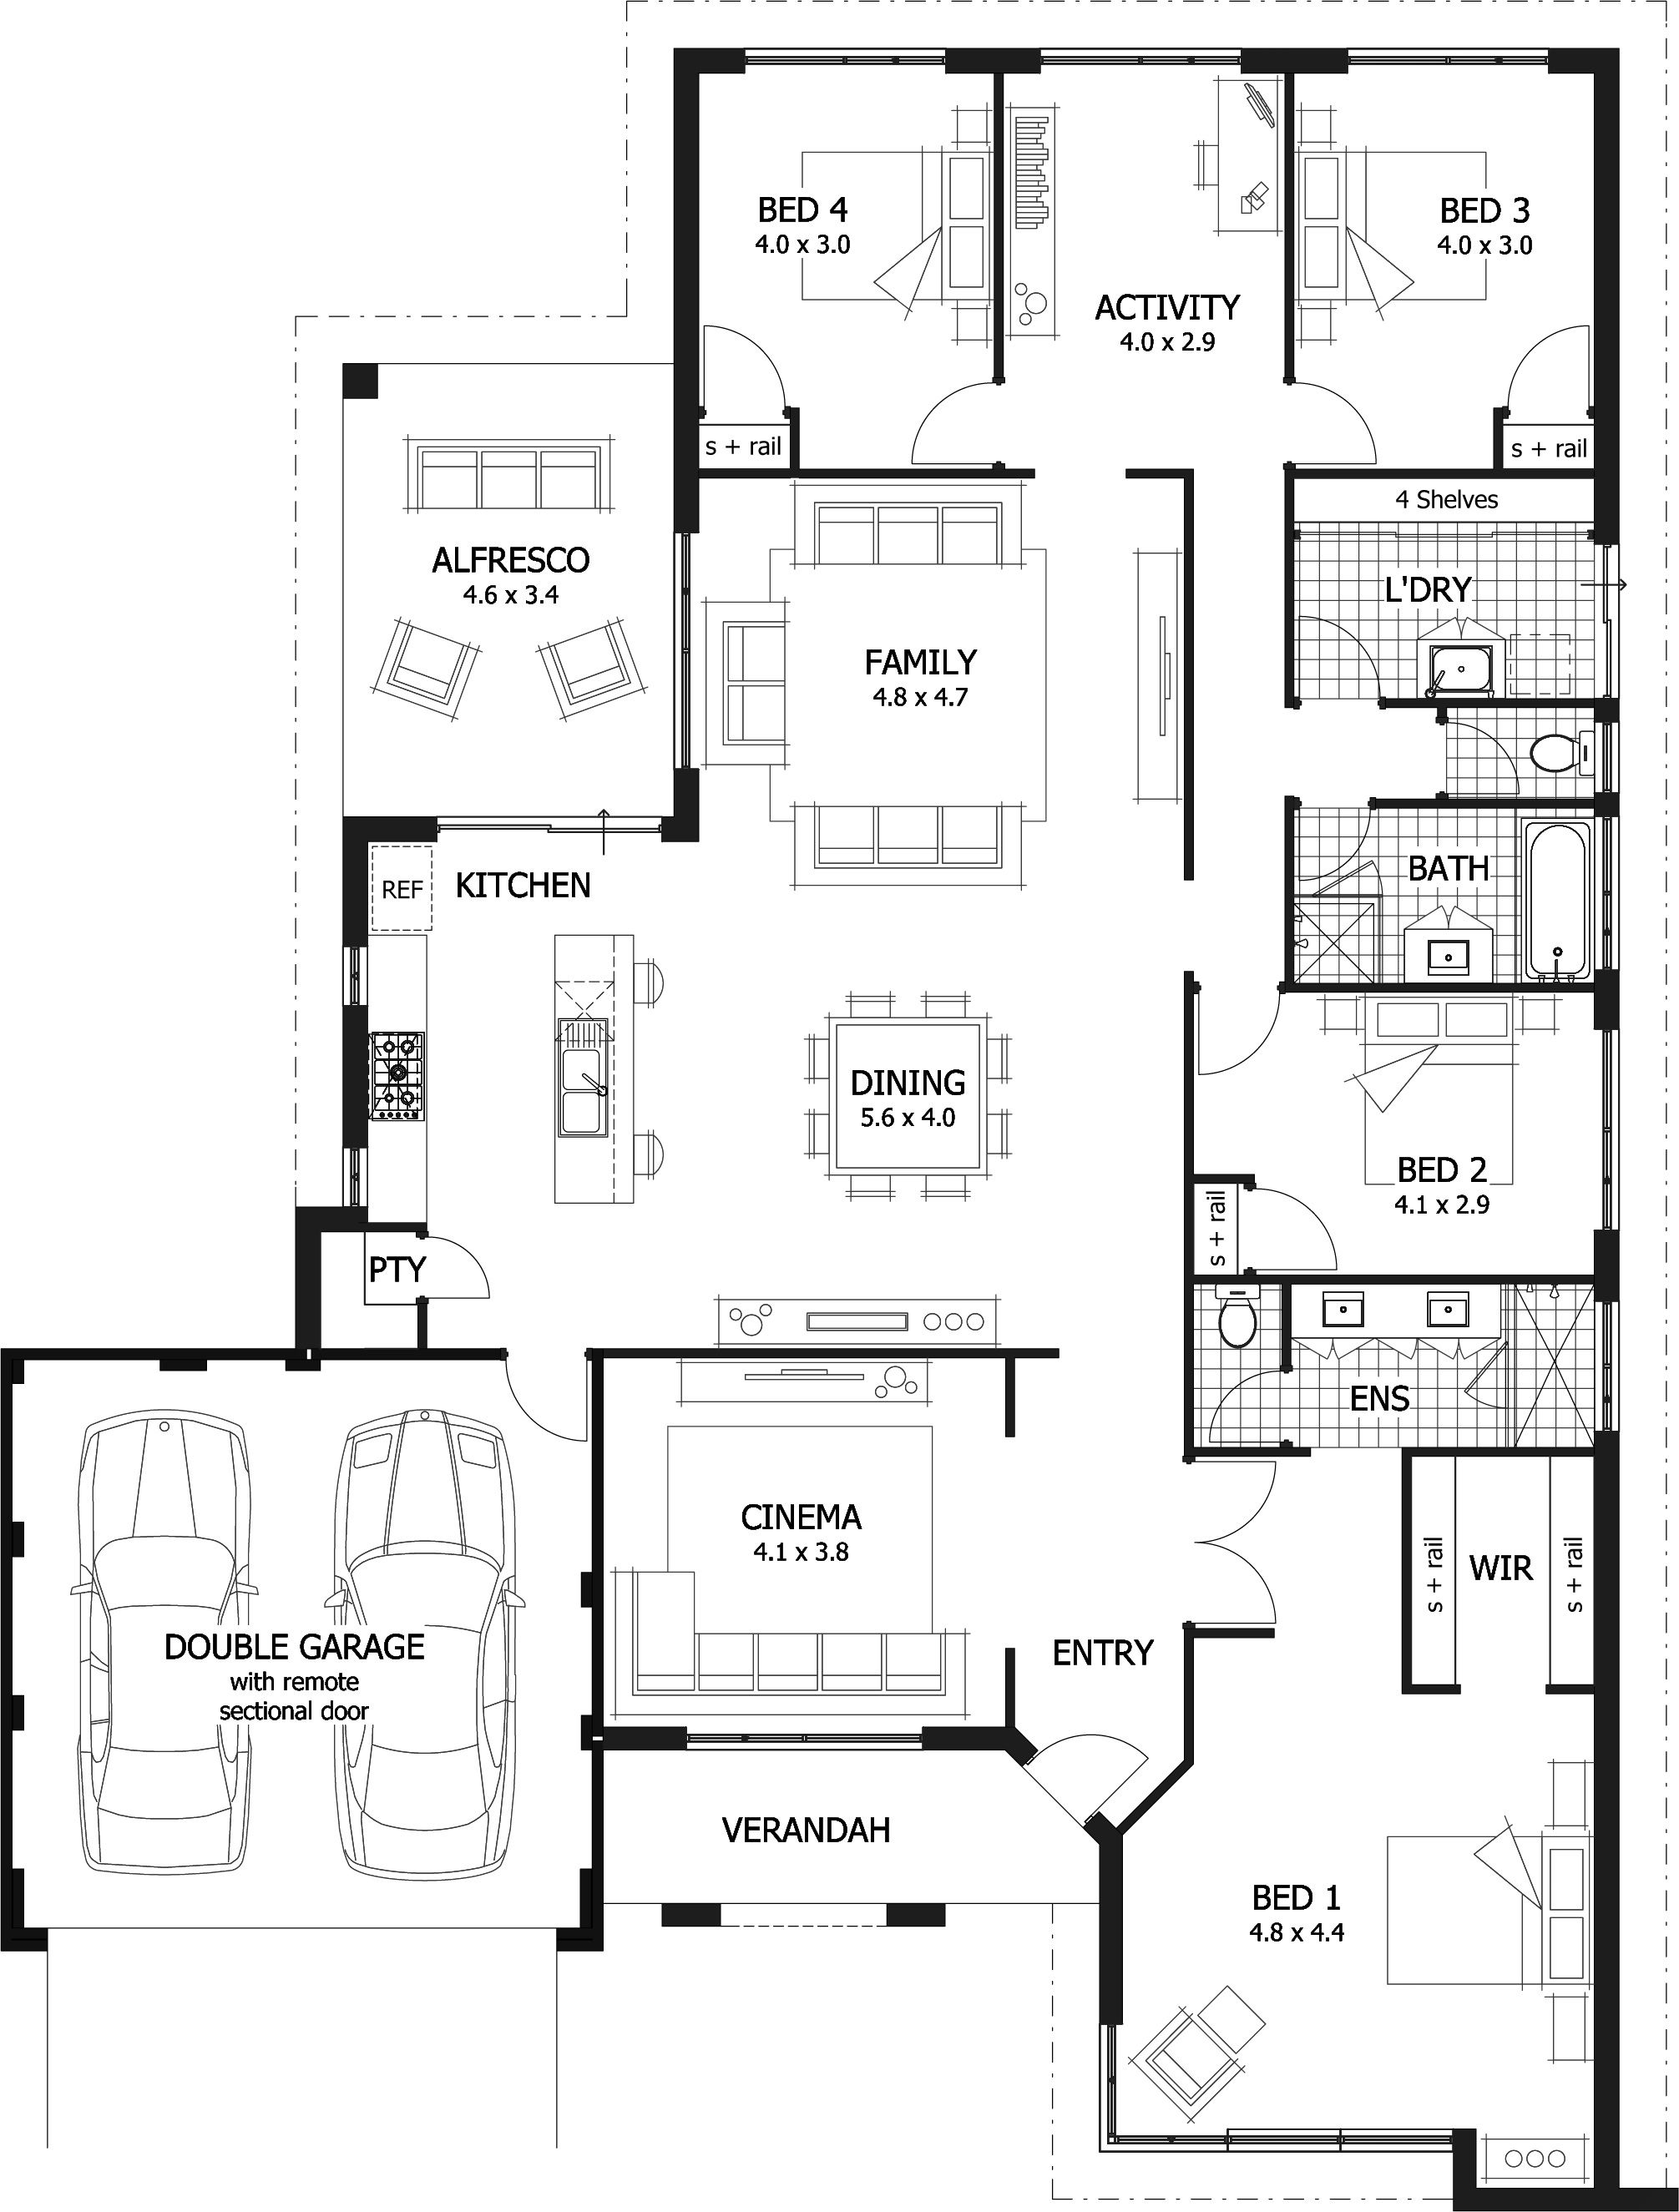 4 Bedroom House Designs Australia. Four Bedroom House Plans One ...